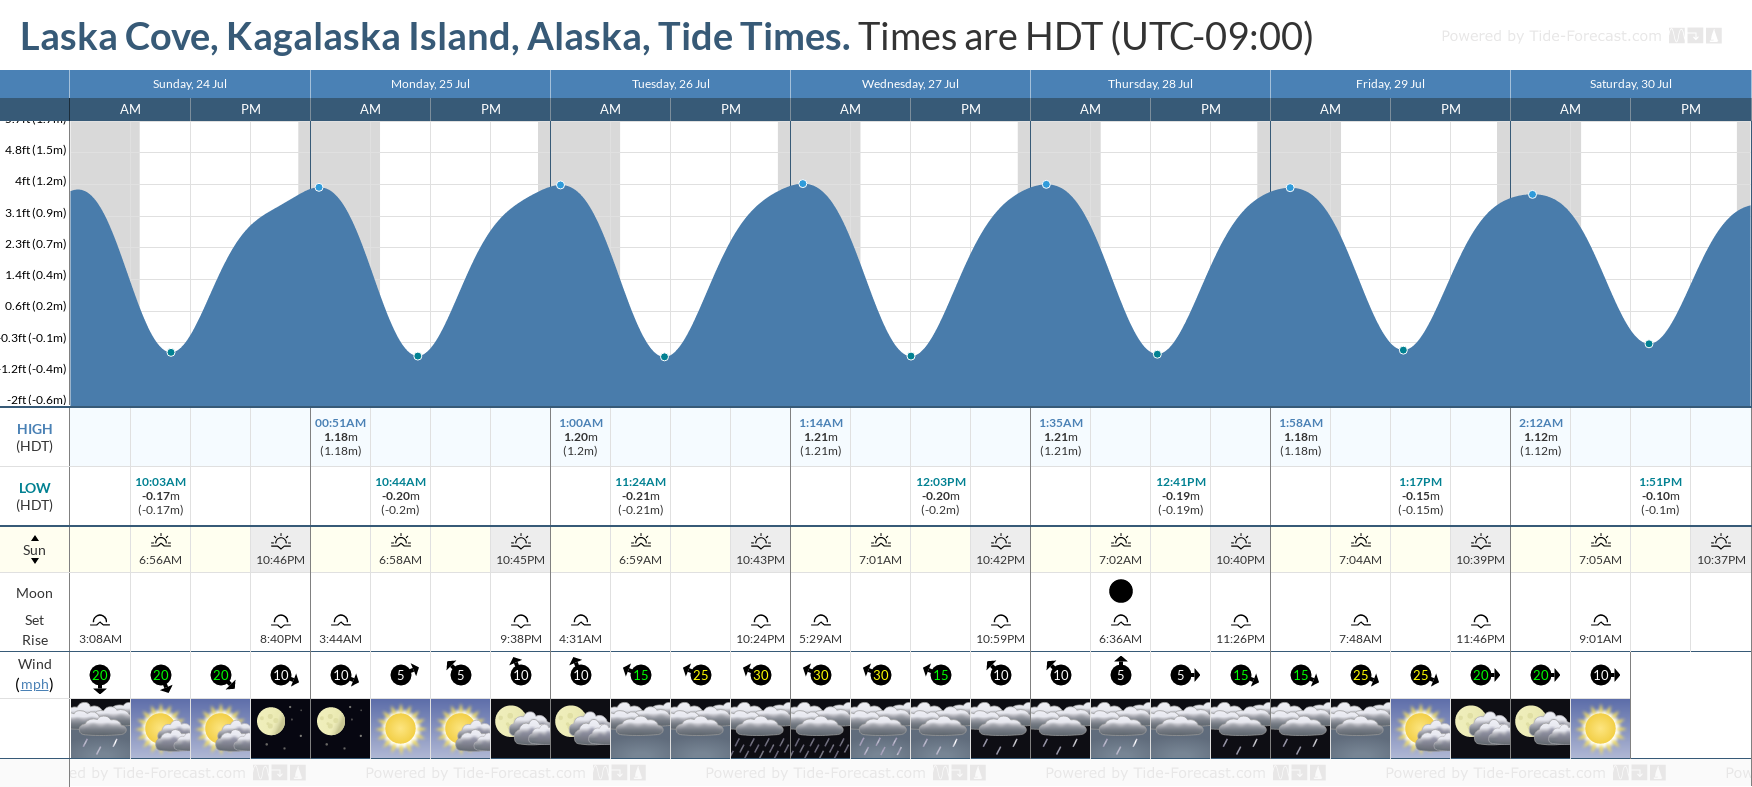 Laska Cove, Kagalaska Island, Alaska Tide Chart including high and low tide tide times for the next 7 days